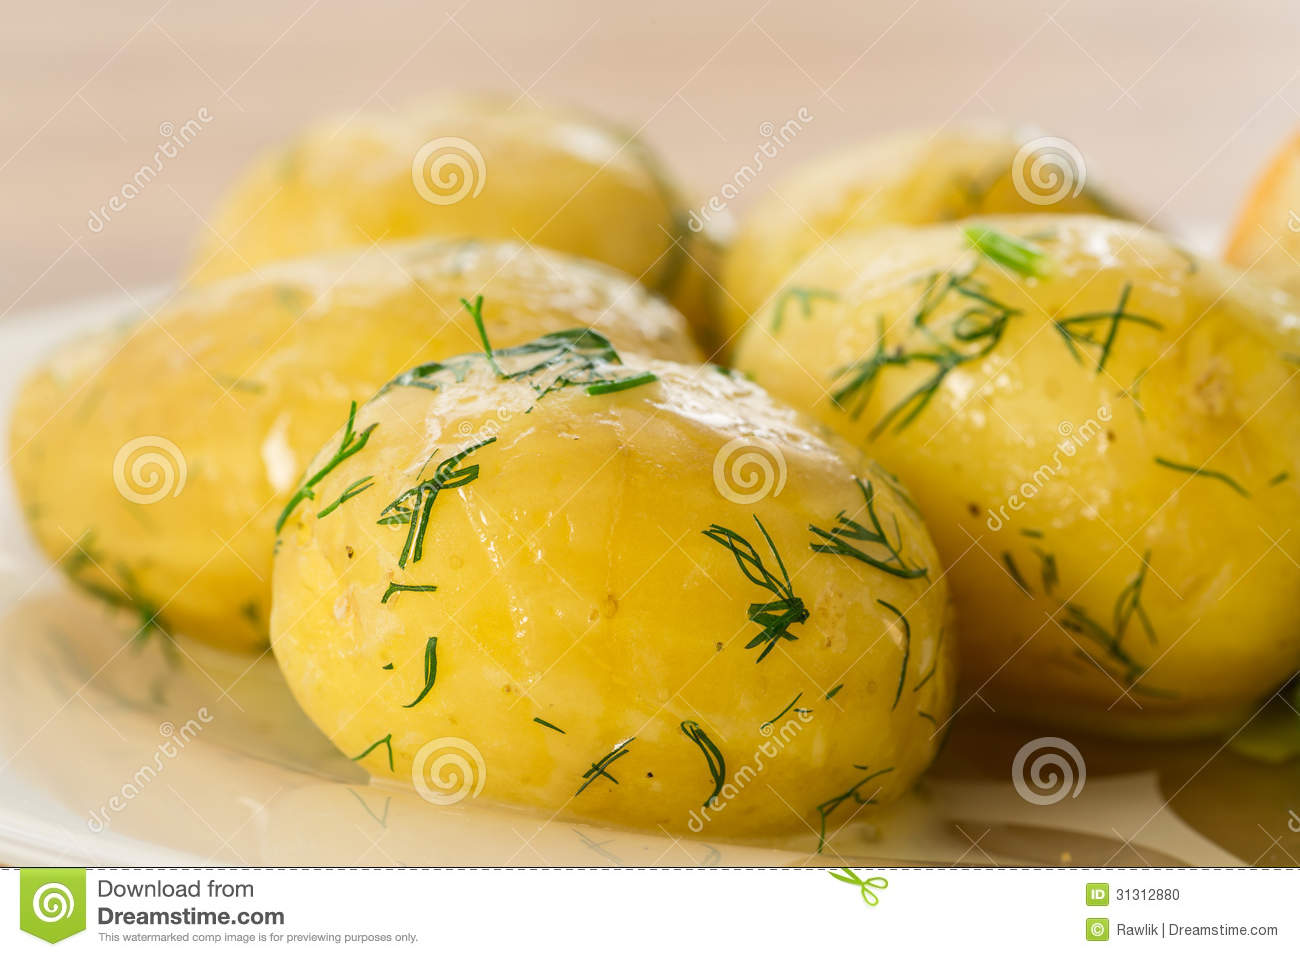 how to tell when potatoes are boiled